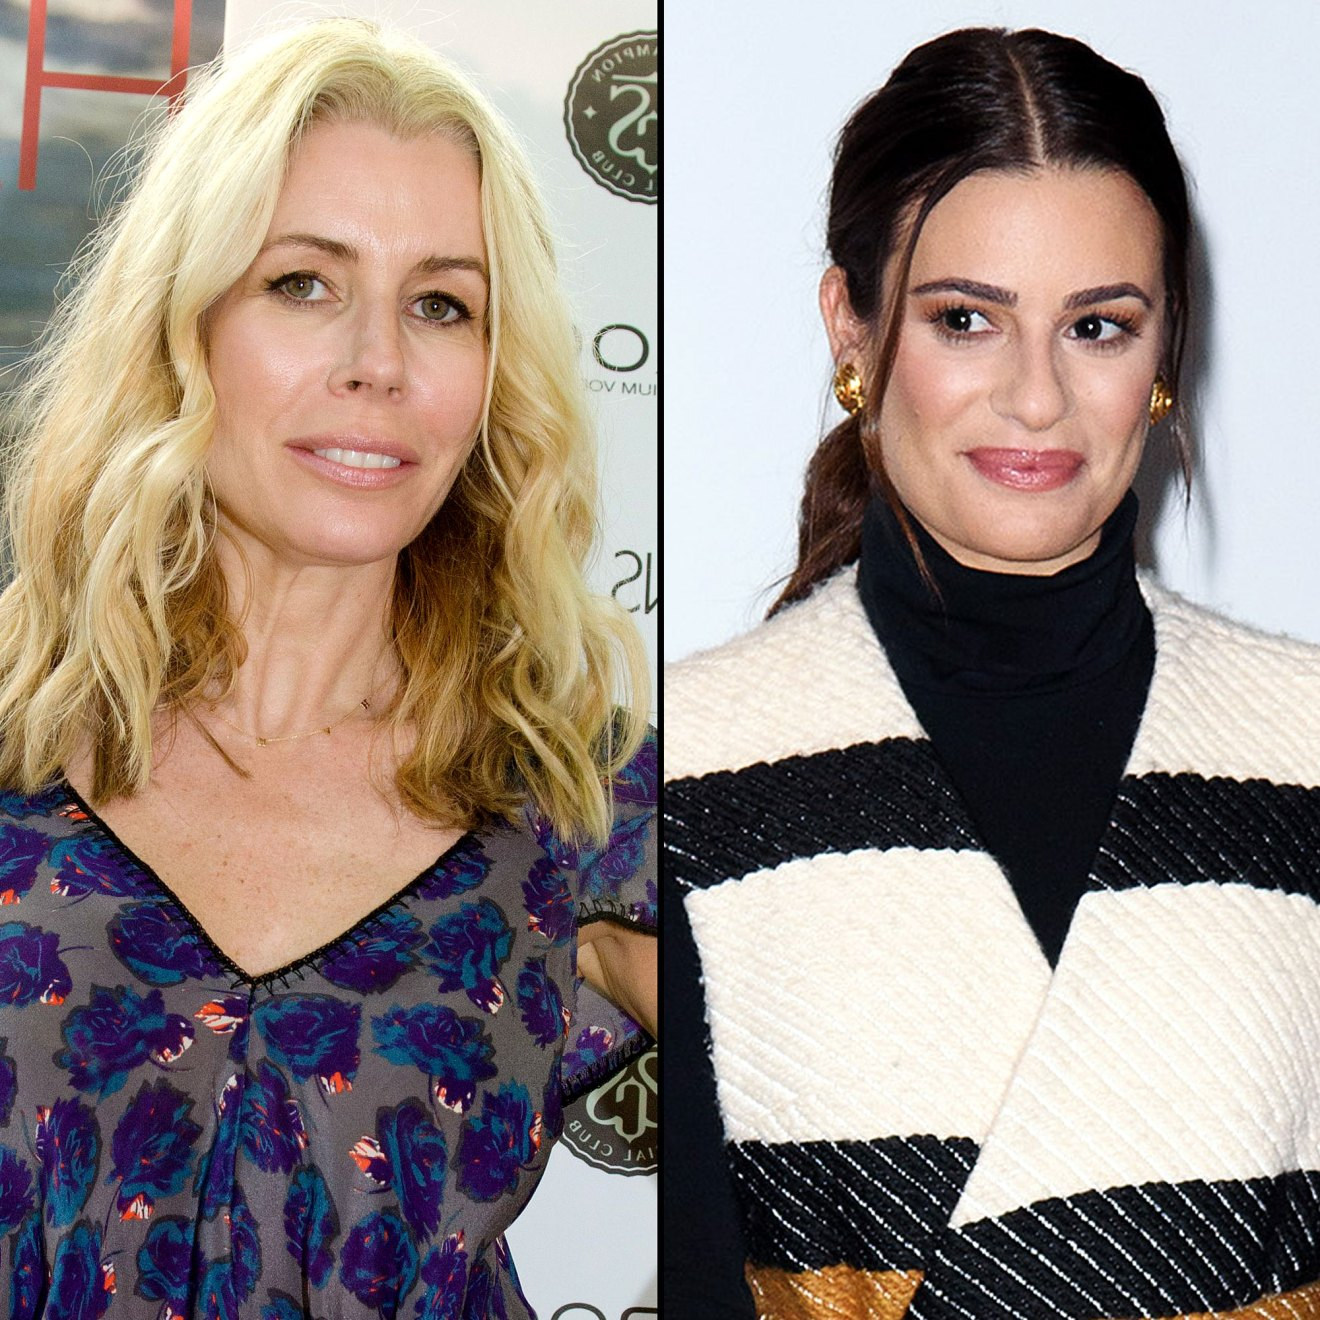 Aviva Drescher Calls Out Lea Michele Says You Were Once Very Unkind To Me So I Am Not Surprised By Your Behavior